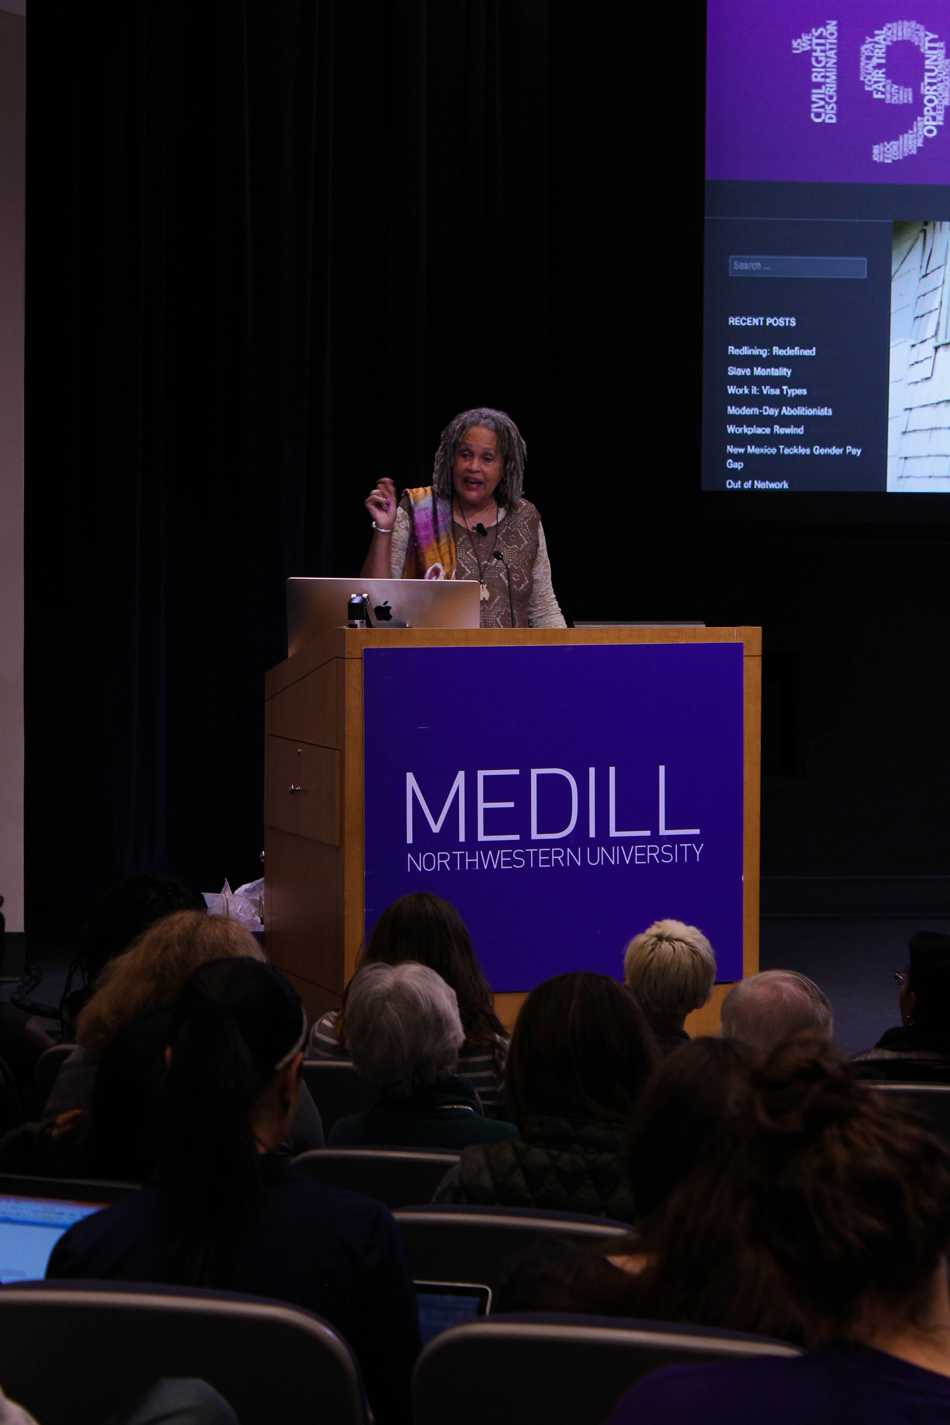 Former PBS and NPR correspondent Charlayne Hunter-Gault speaks at Medill about growing up in the 1960s. Hunter-Gault was one of the first two black students to enroll at the University of Georgia during the civil rights movement.